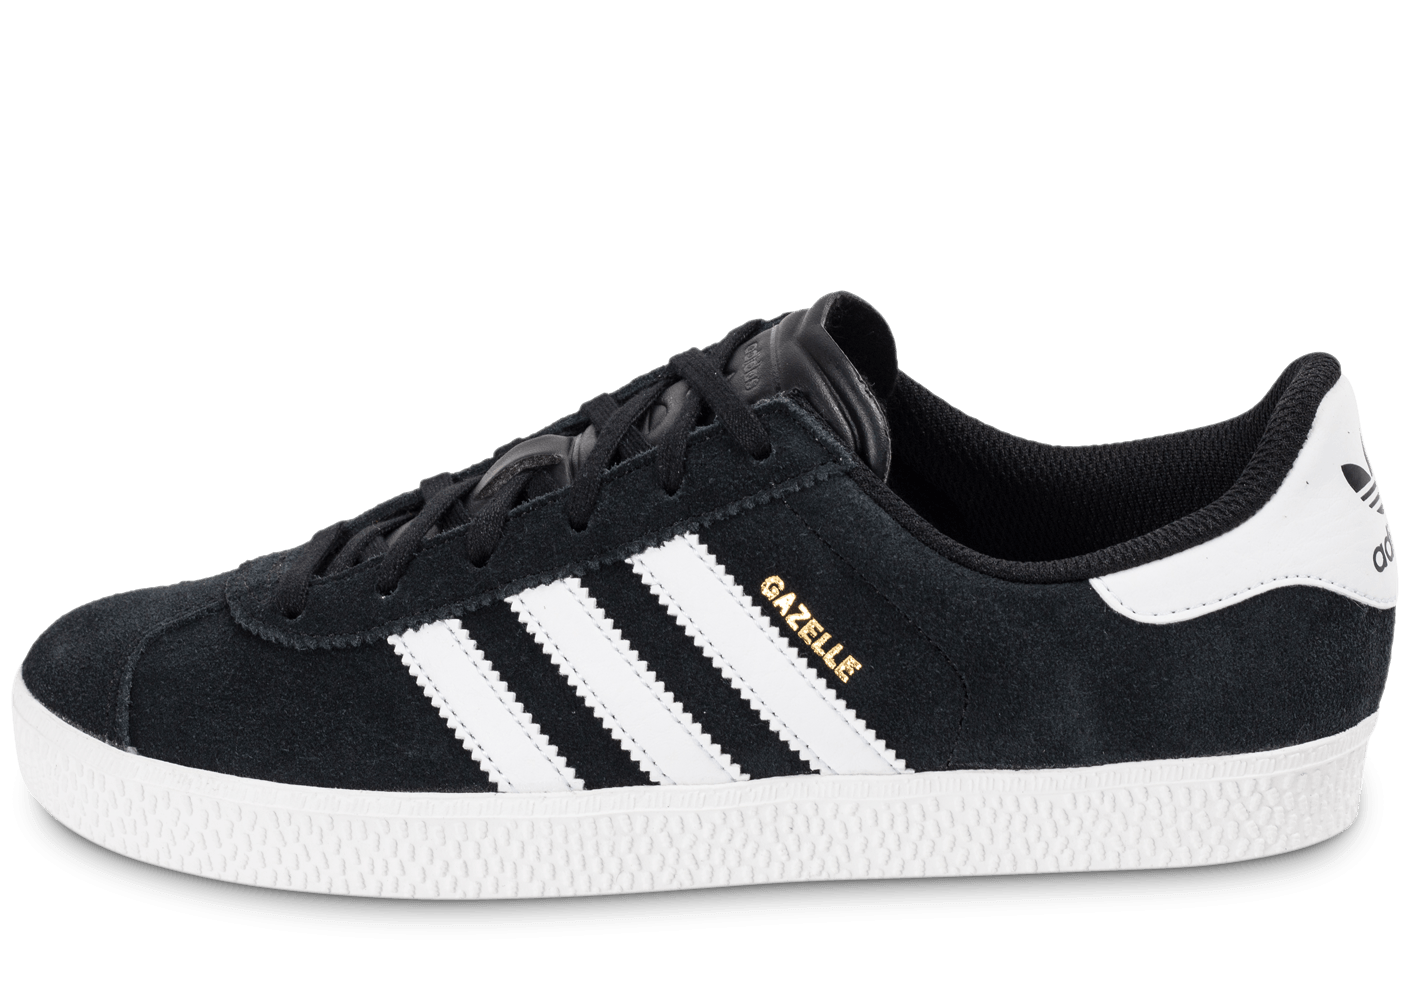 new product a7398 9a94b adidas Gazelle 2 Junior noire et blanche - Chaussures adidas